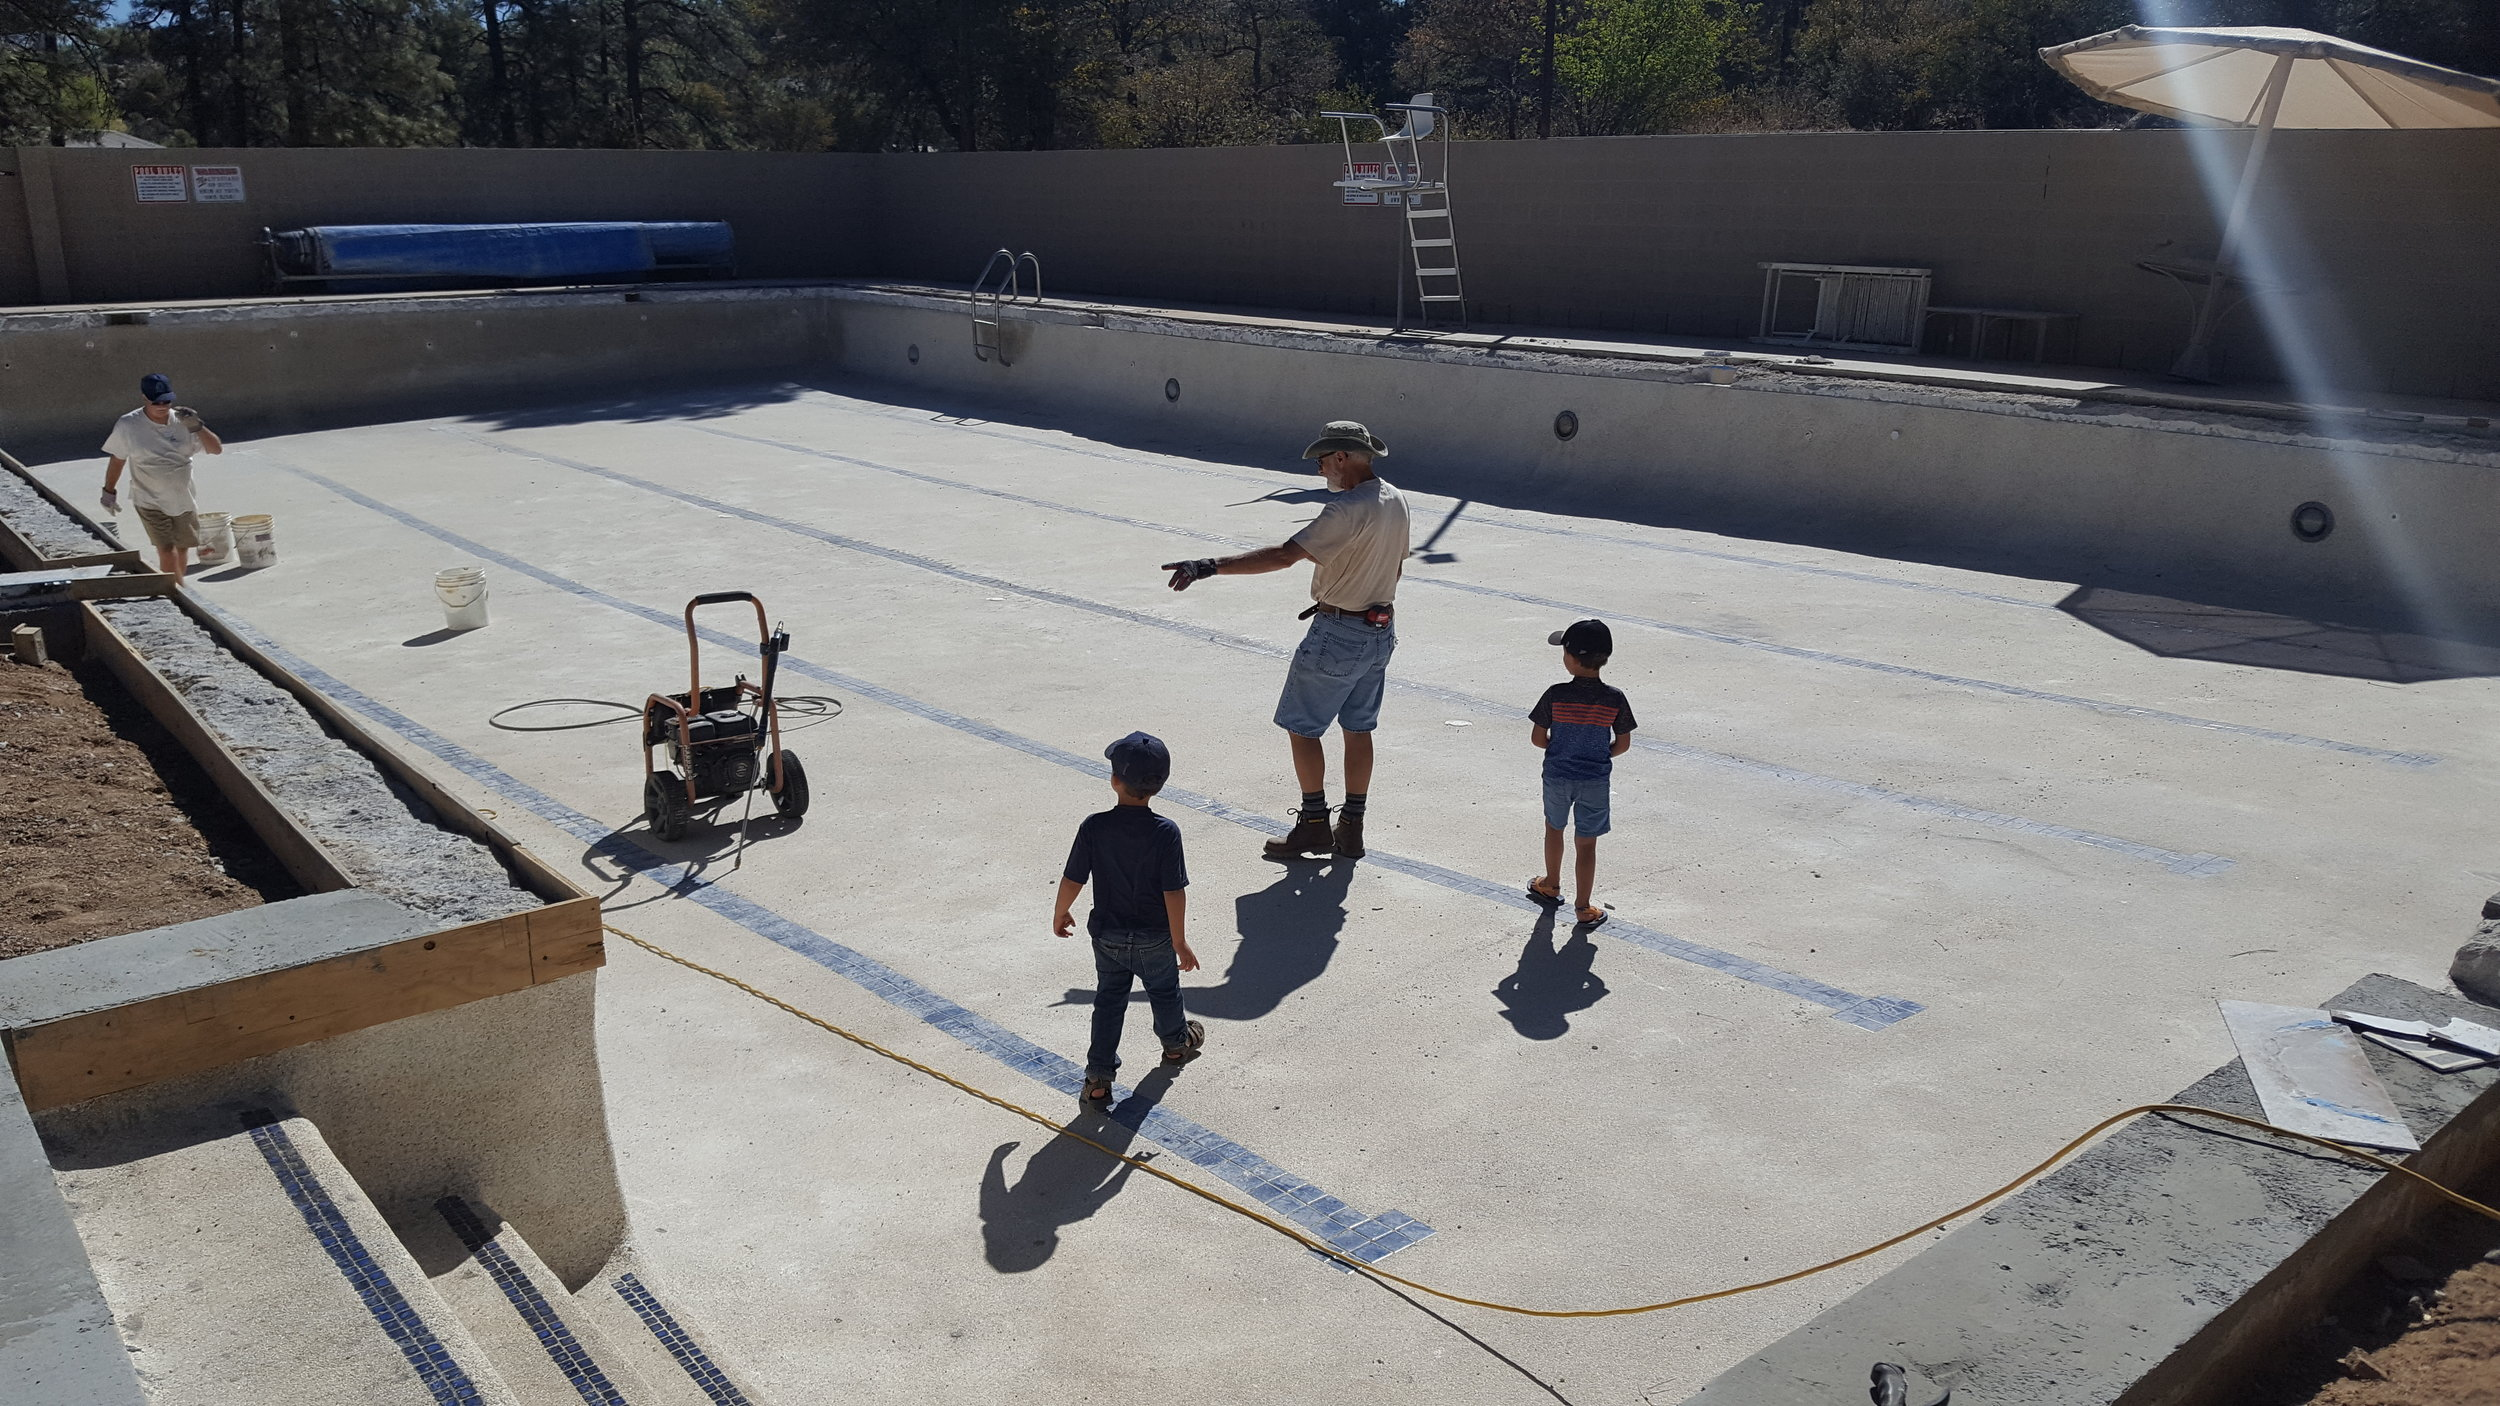 The boys supervising the pool efforts.